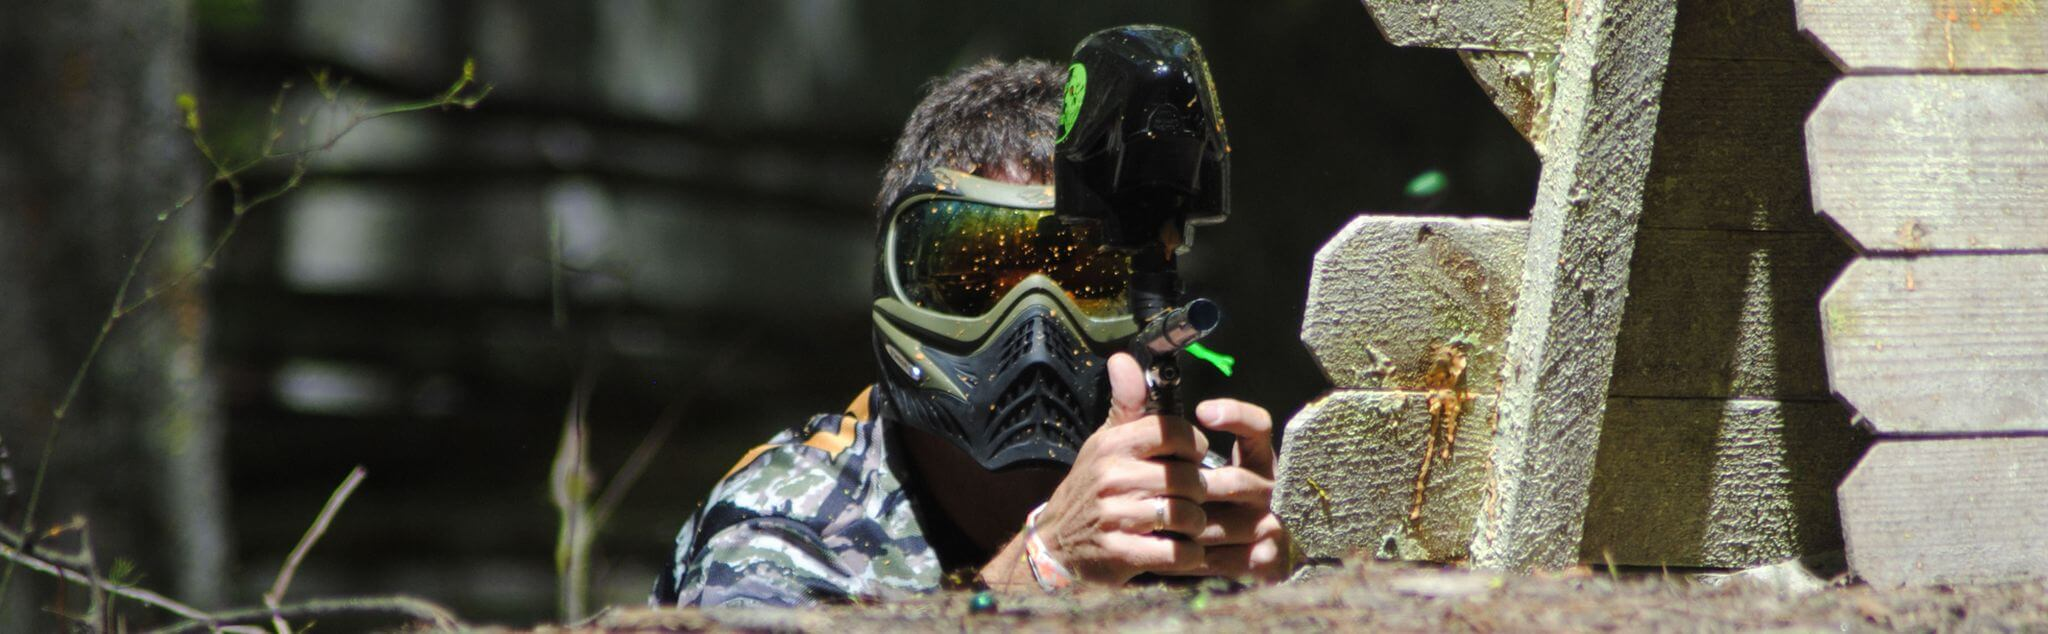 Paintball dans Sermaises